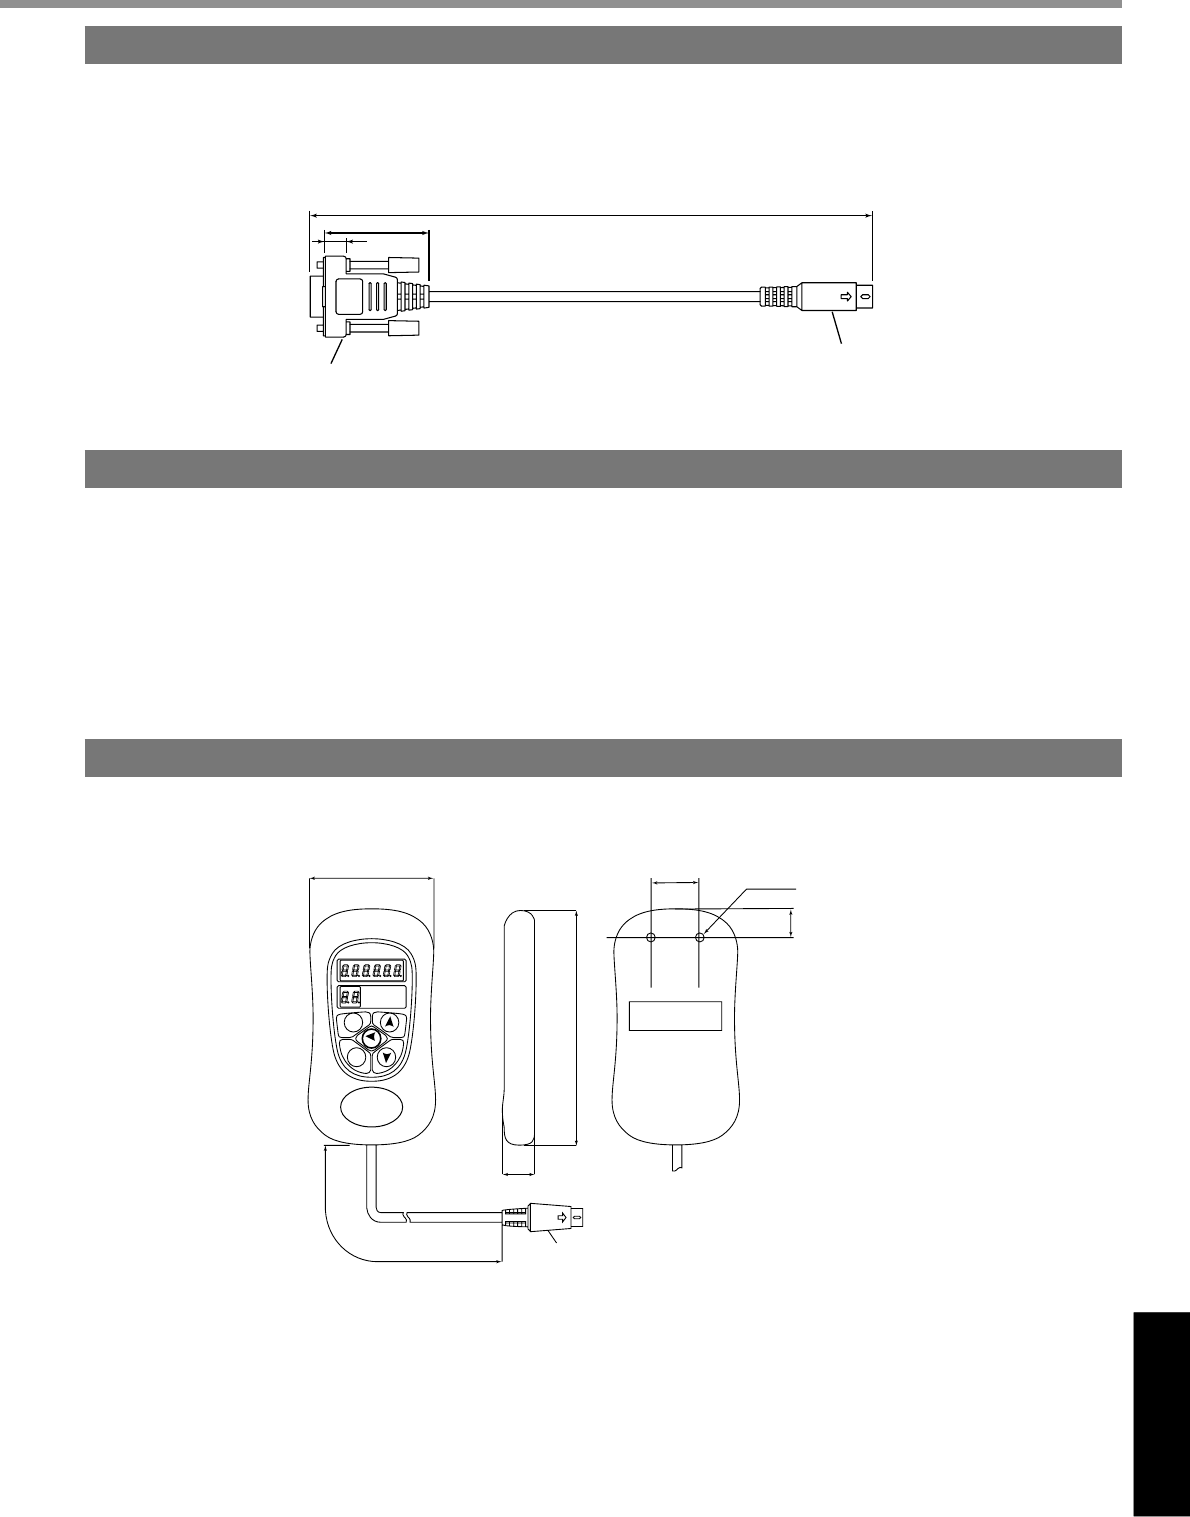 Panasonic Imc80a Communications Cable Connection With Personal Servo Motor Wiring Diagram 189